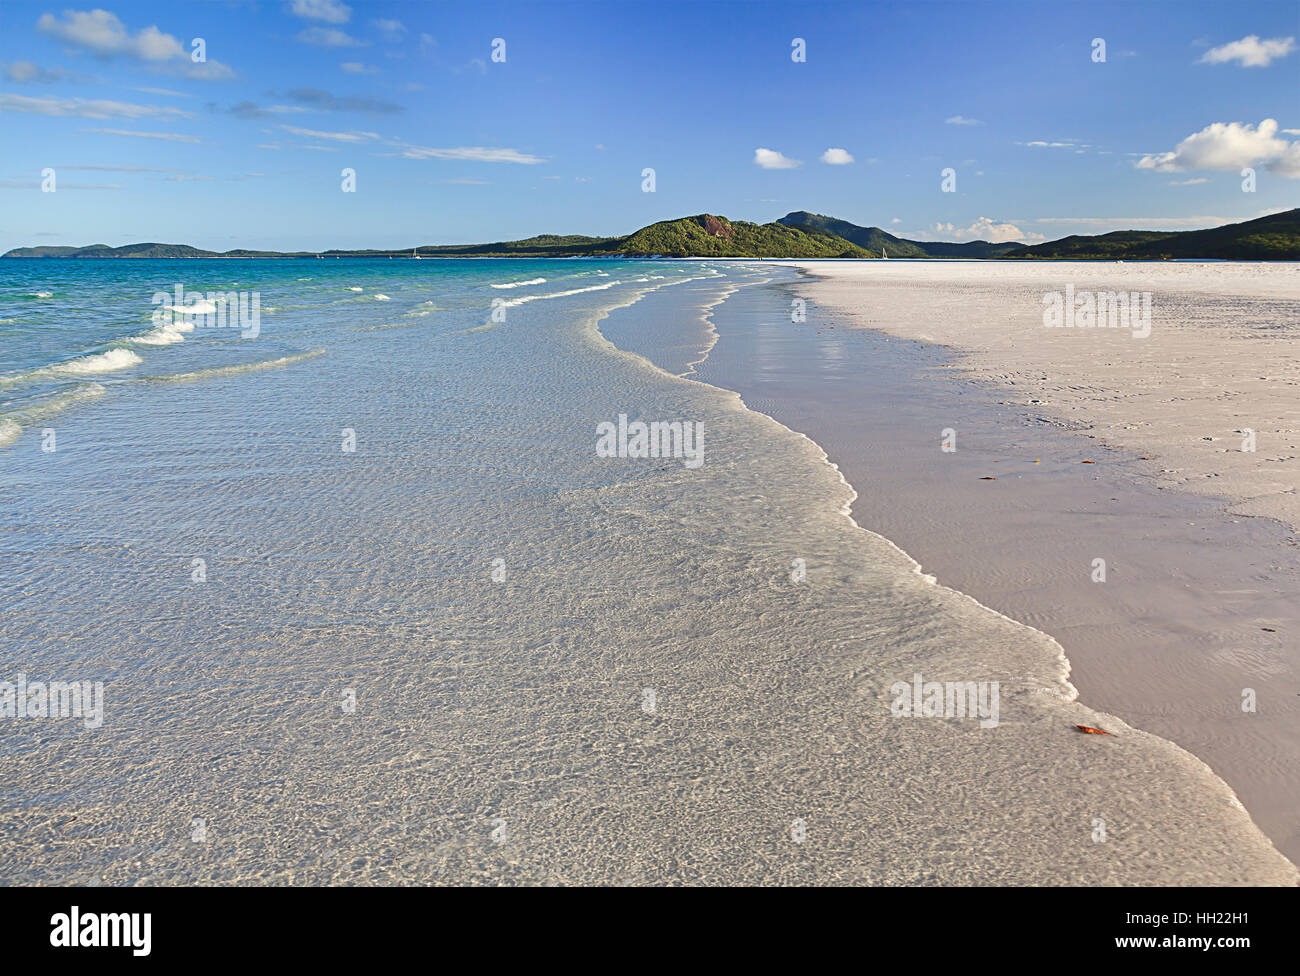 Whitehaven white silica sand beach on WHitsunday island in Coral sea of Pacific Australia. Tropical paradise from - Stock Image